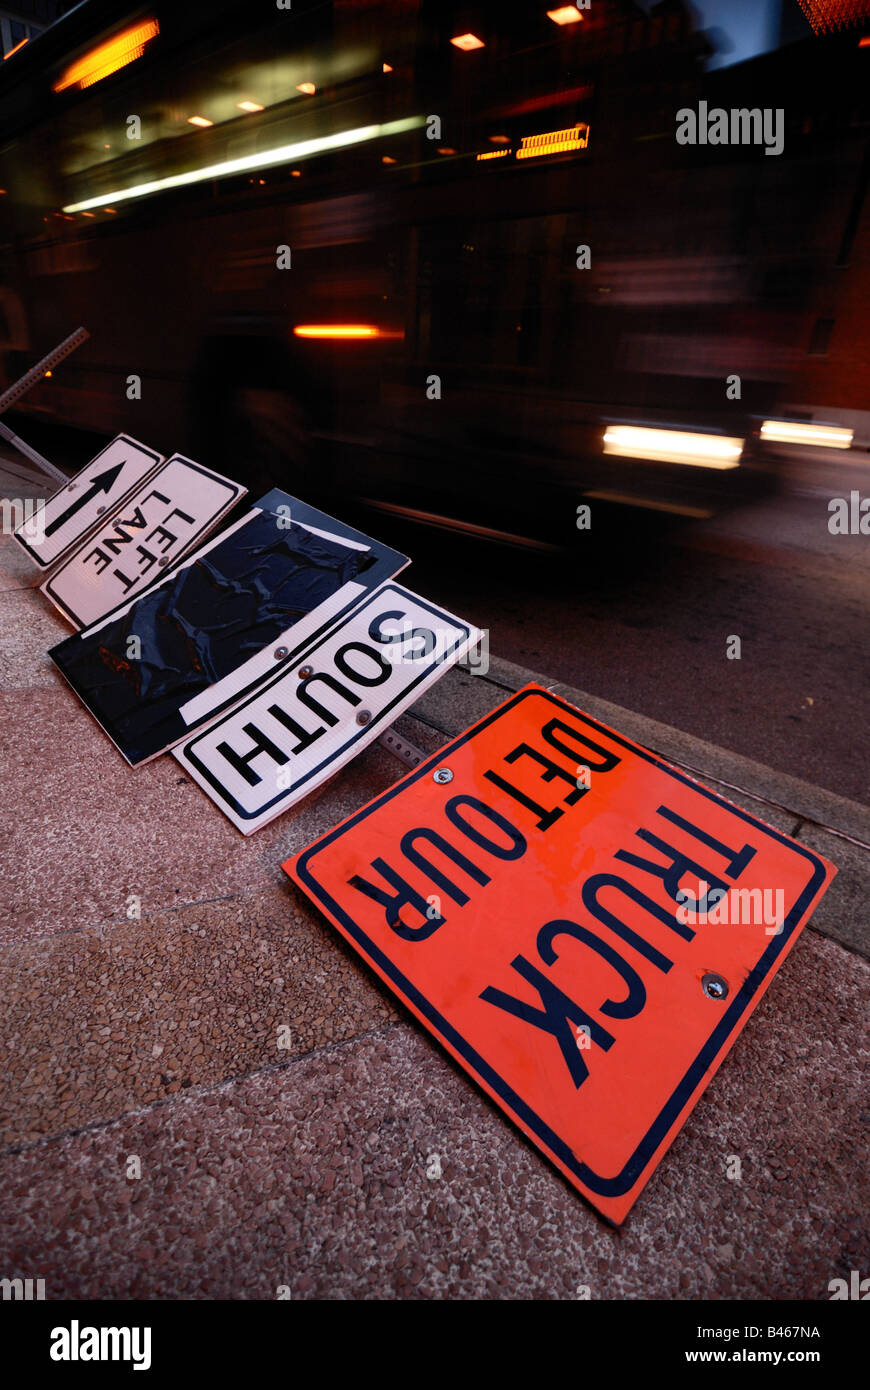 A detour sign that has been knocked over is lying on the sidewalk as a fast moving bus passes by. - Stock Image